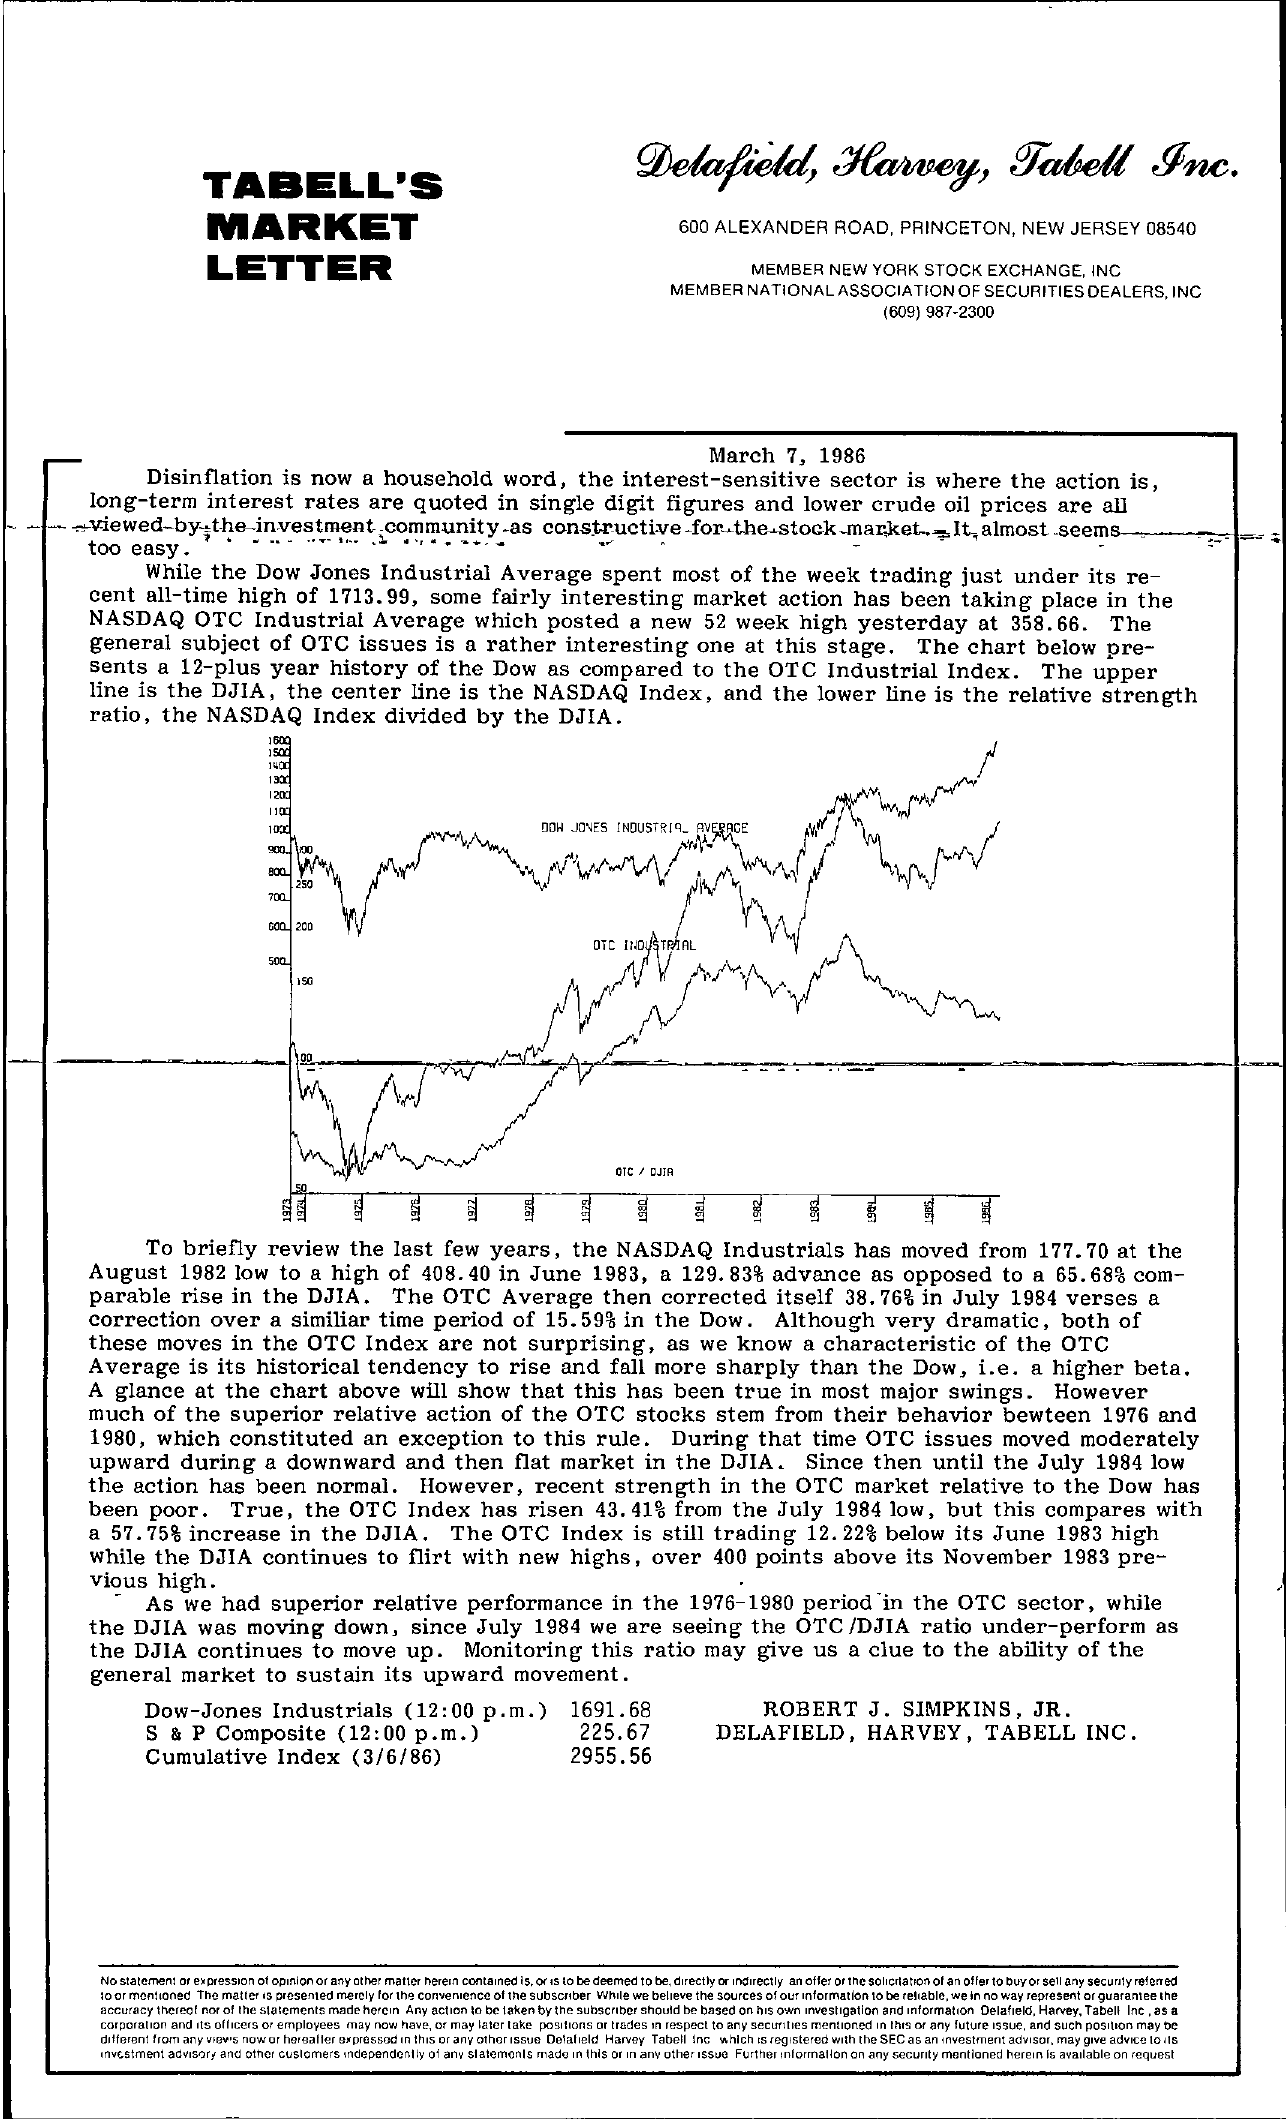 Tabell's Market Letter - March 07, 1986